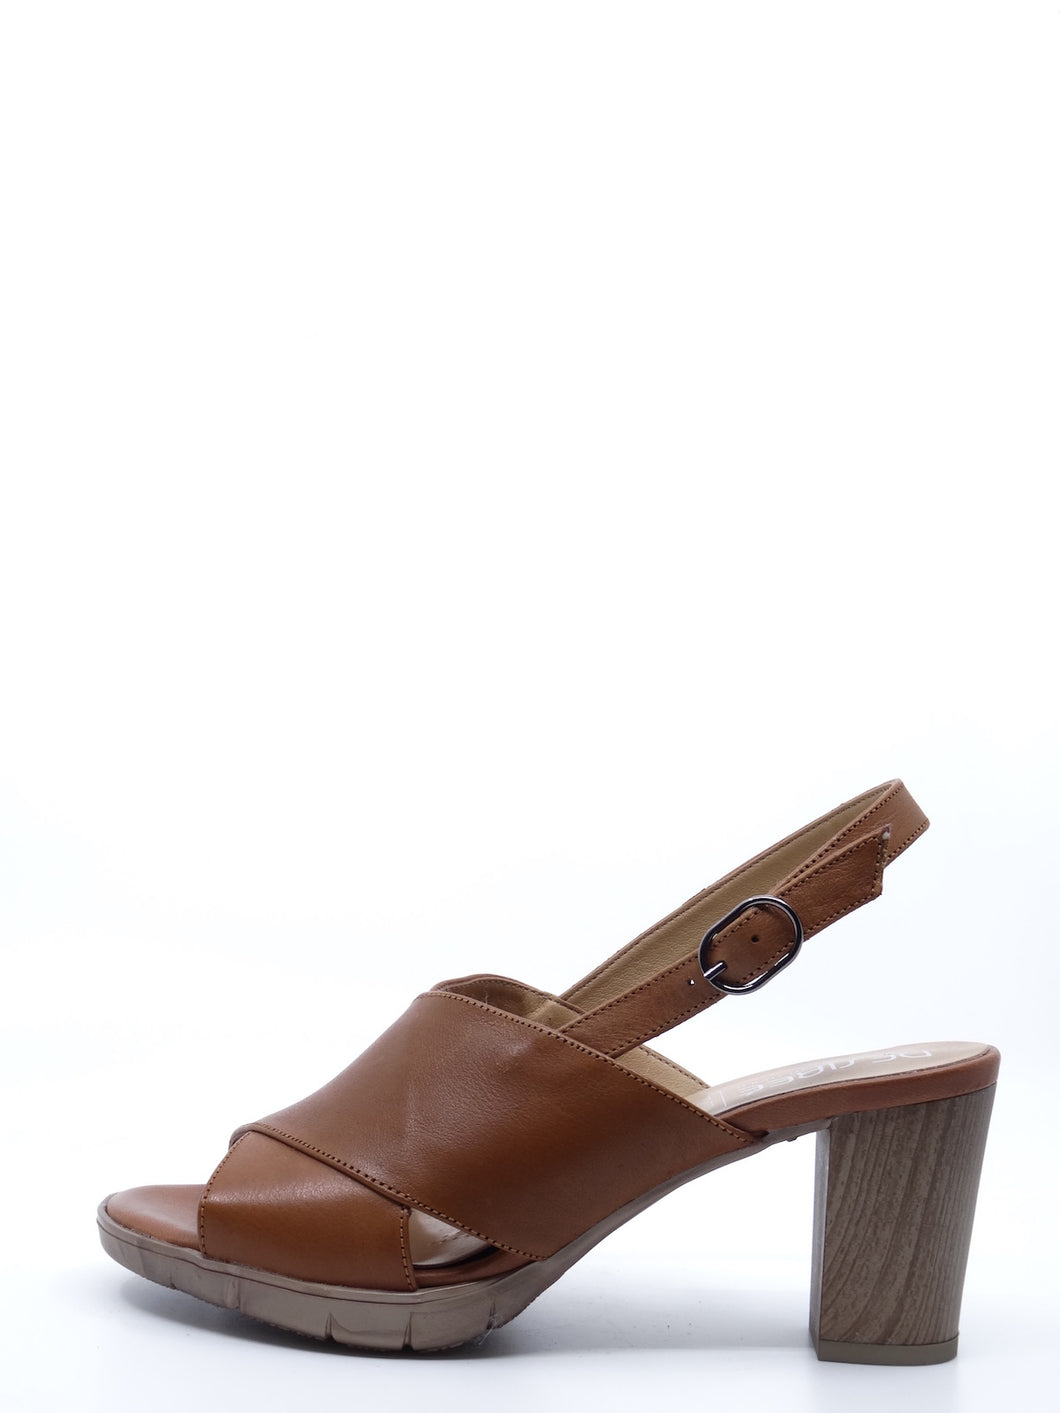 Desiree Dijon Tobaco Leather